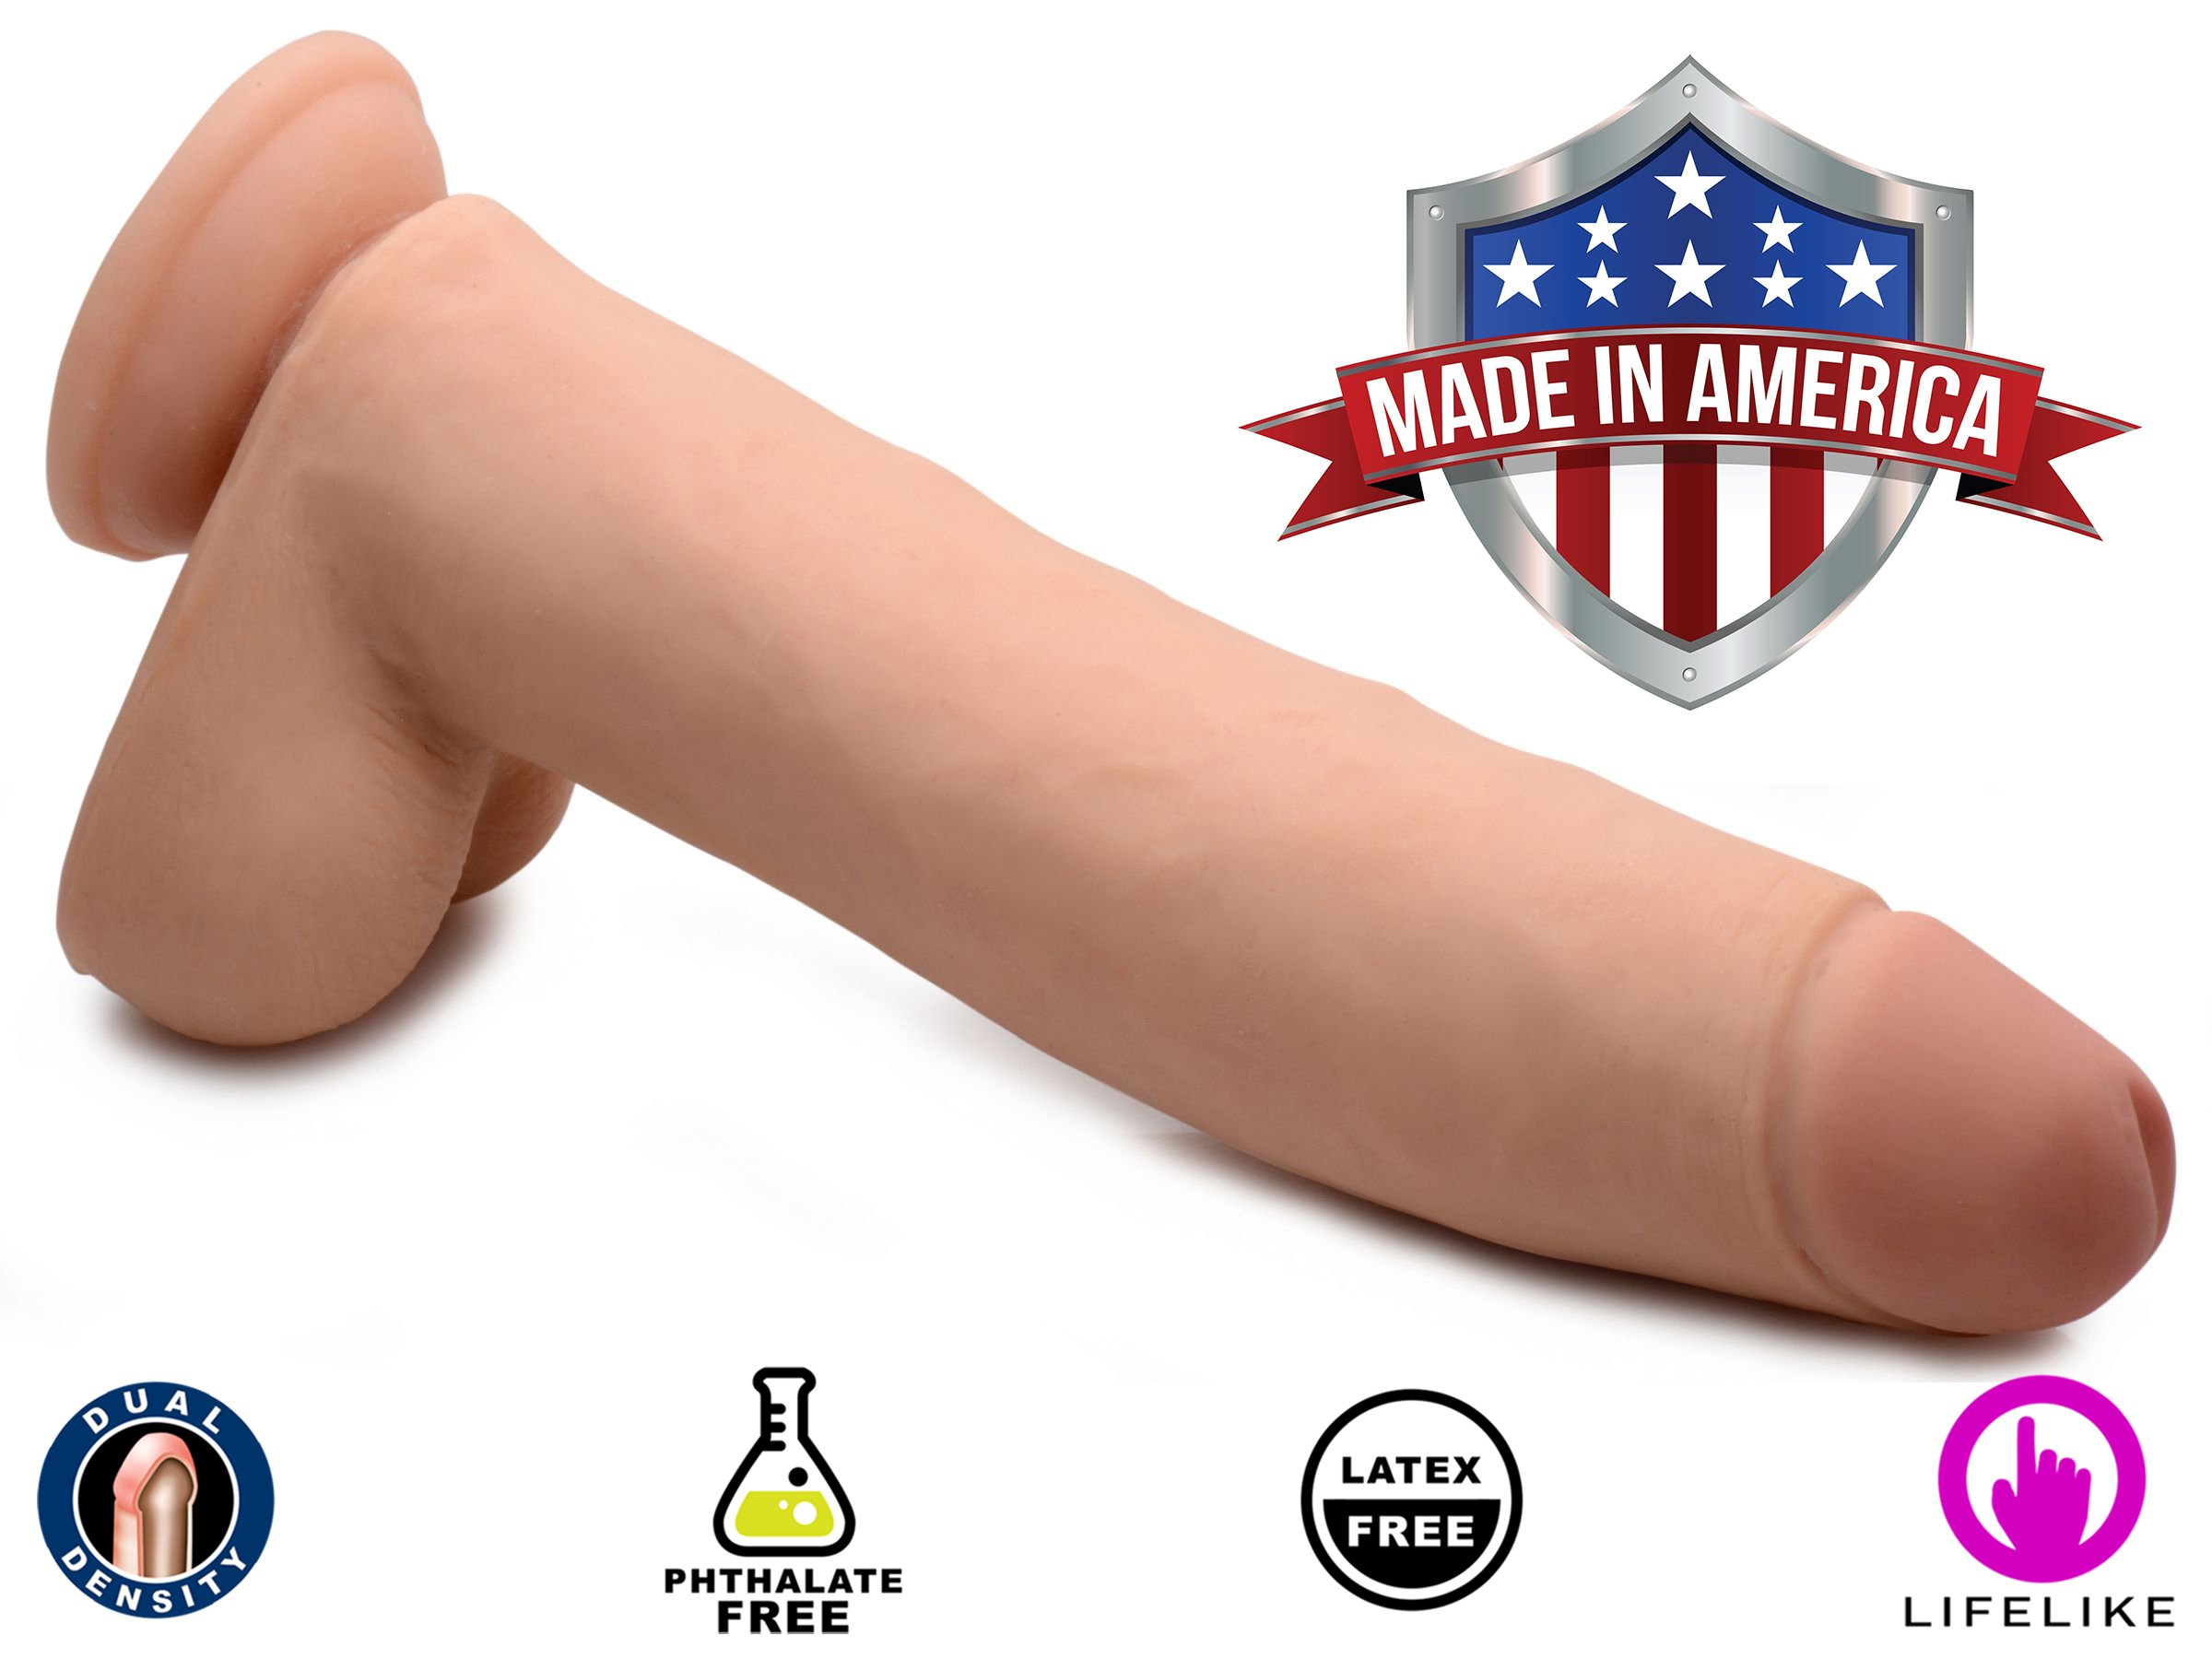 TrueTouch Nathan Skintech Realistic Dildo, 11 Inch by True touch